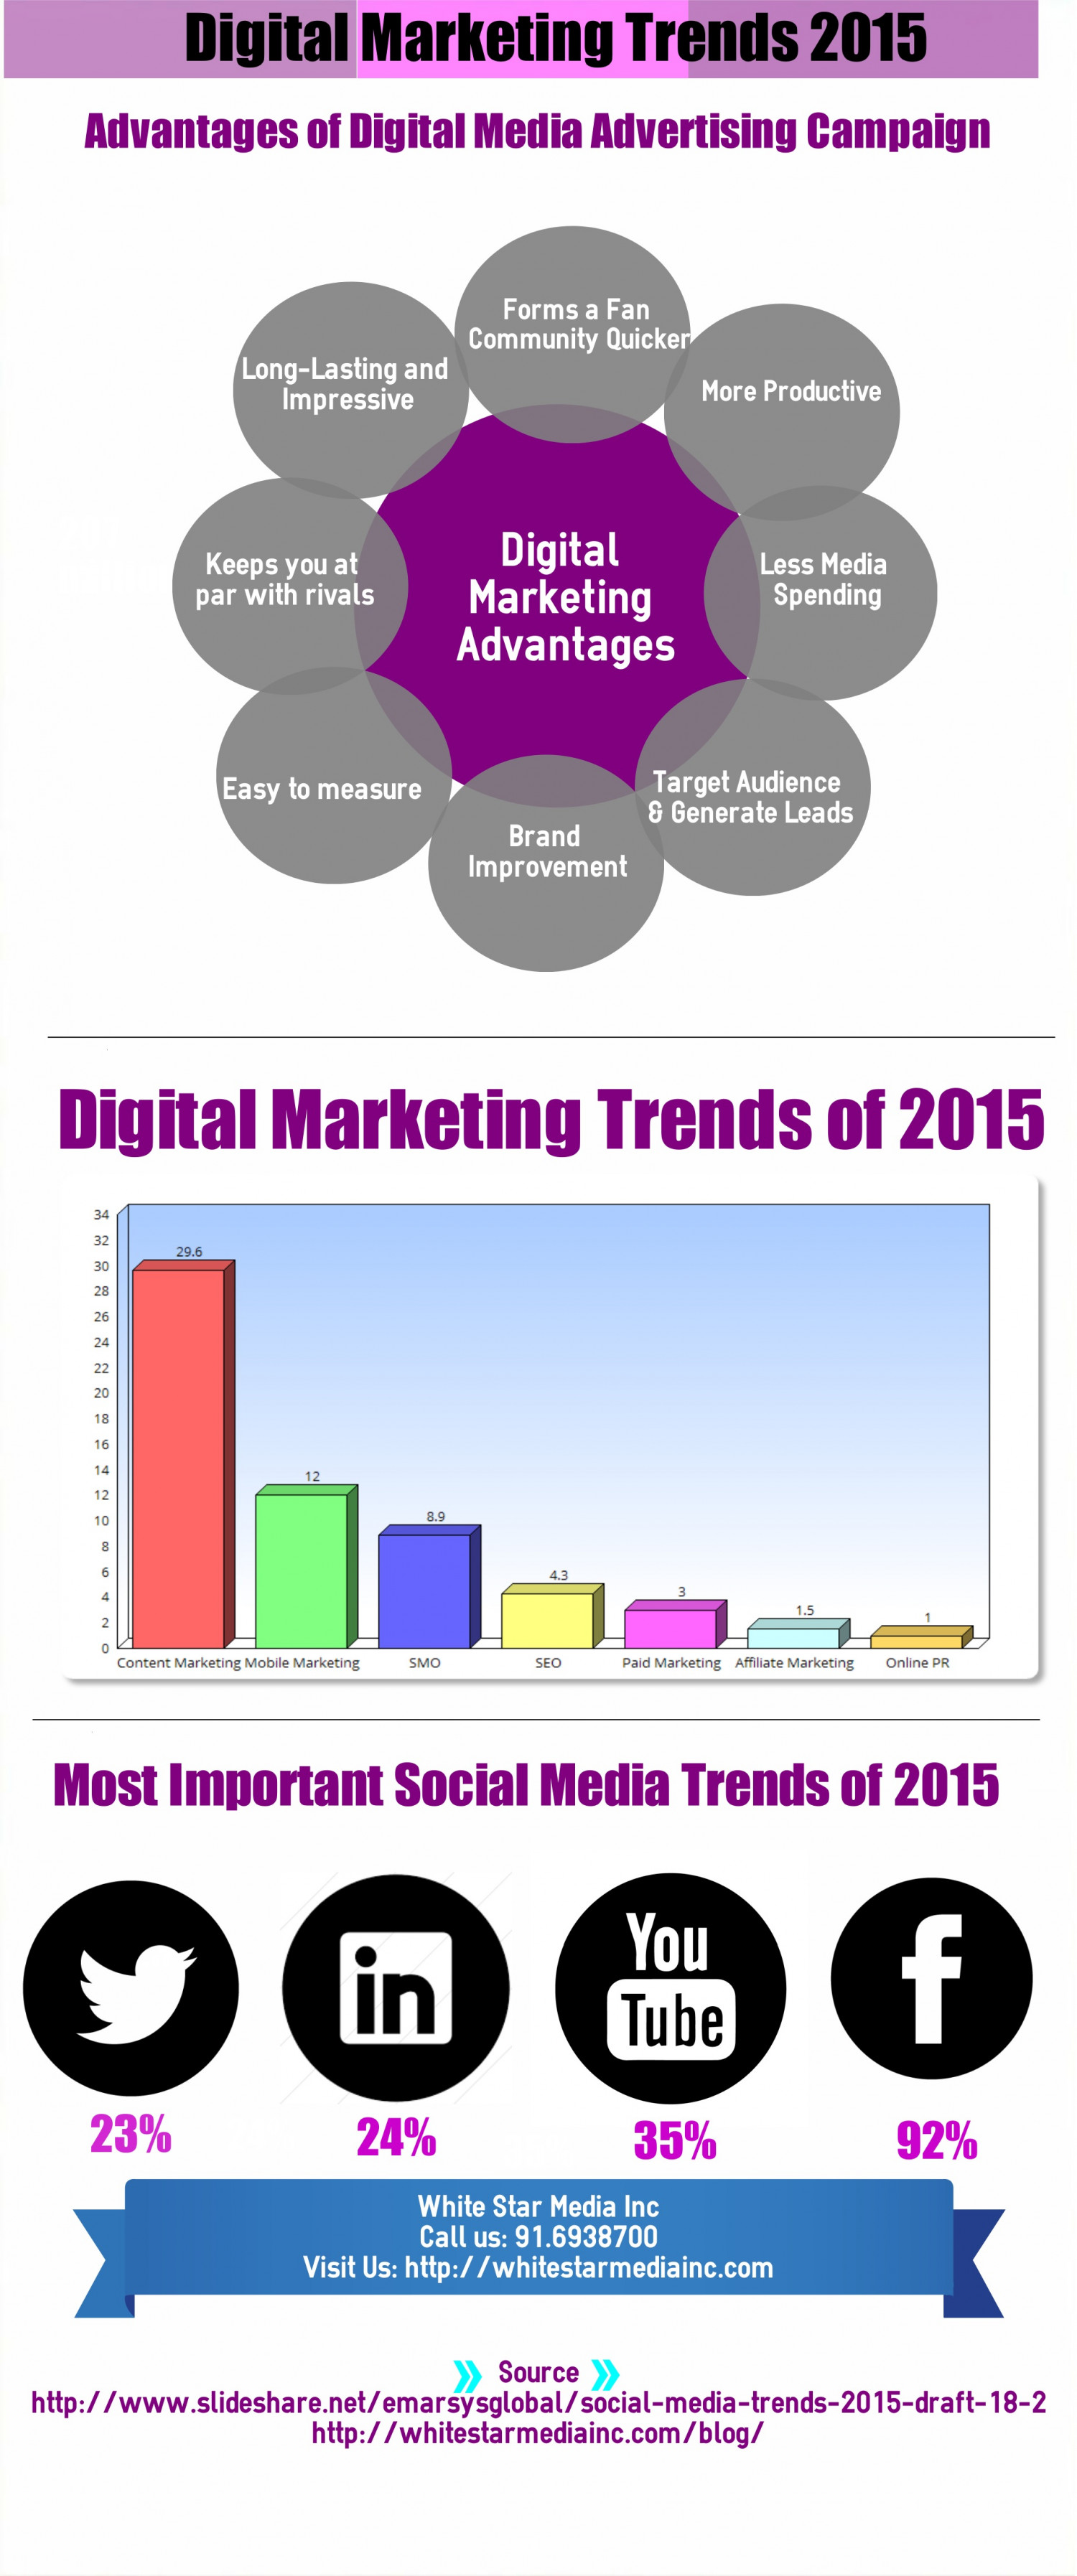 Latest Trends and Benefits of Digital Media Marketing 2015 Infographic